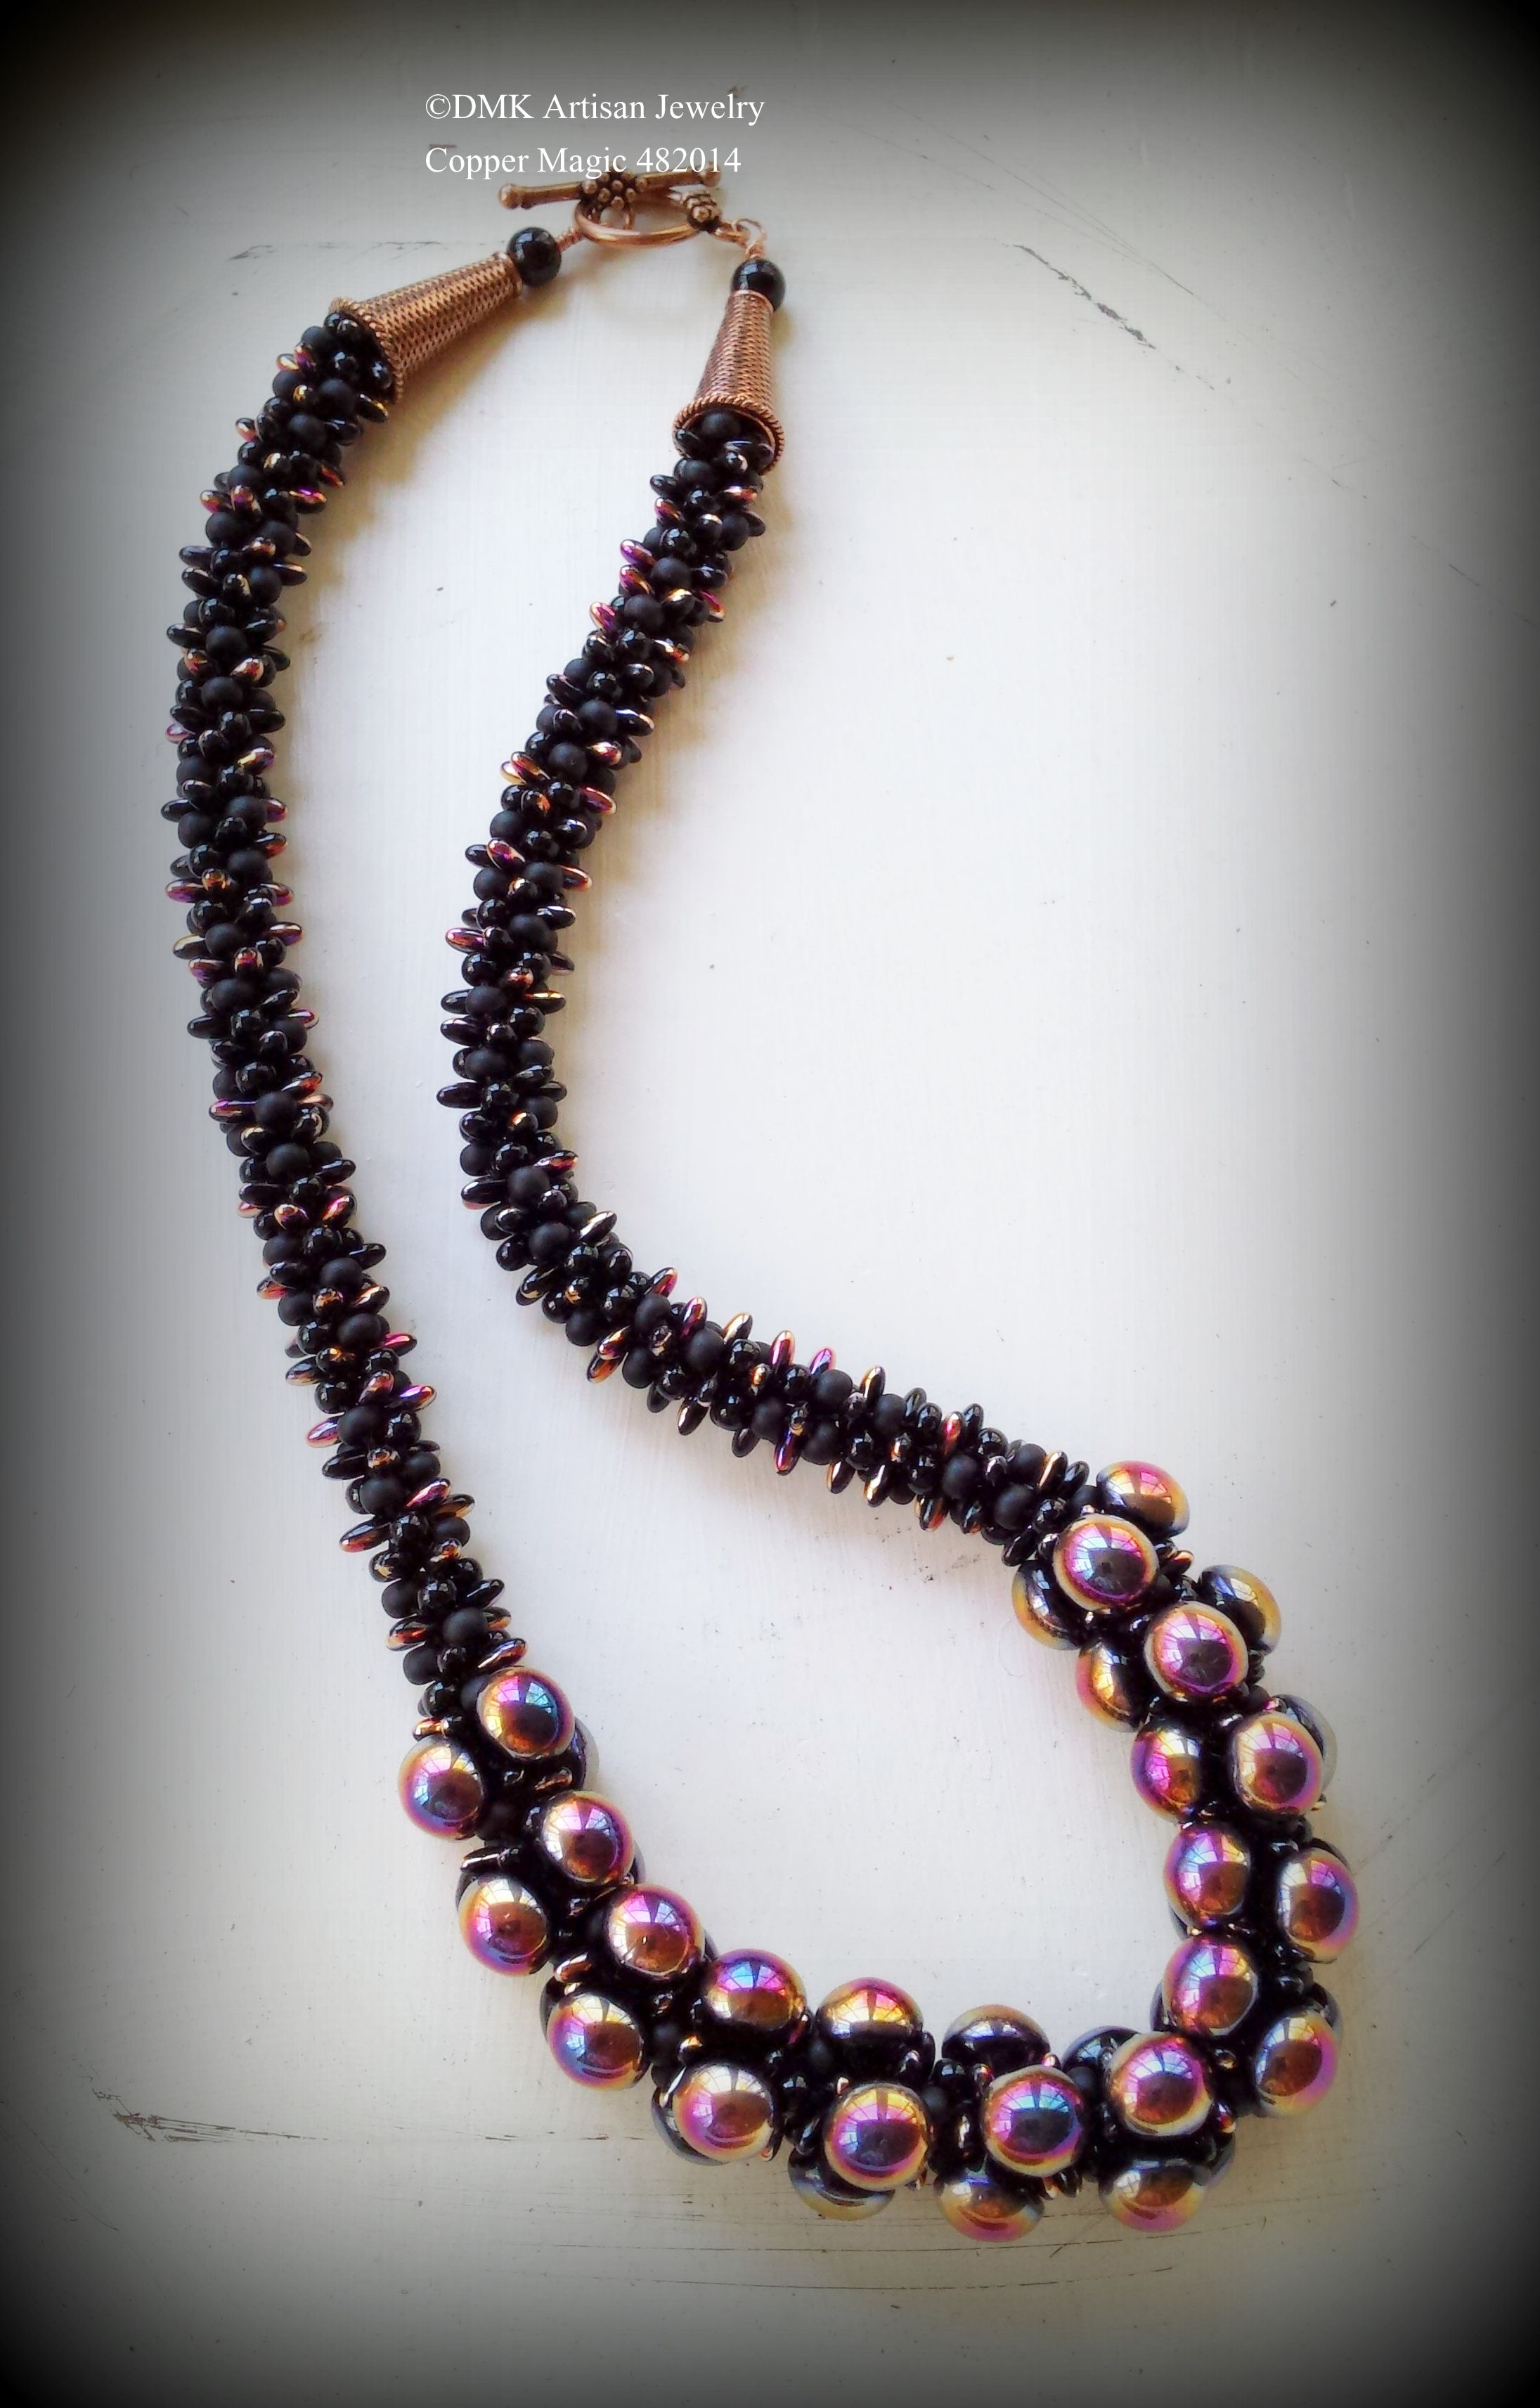 Kumihimo Necklace | Kumihimo | Pinterest | Collares, Bisuteria y Cuentas